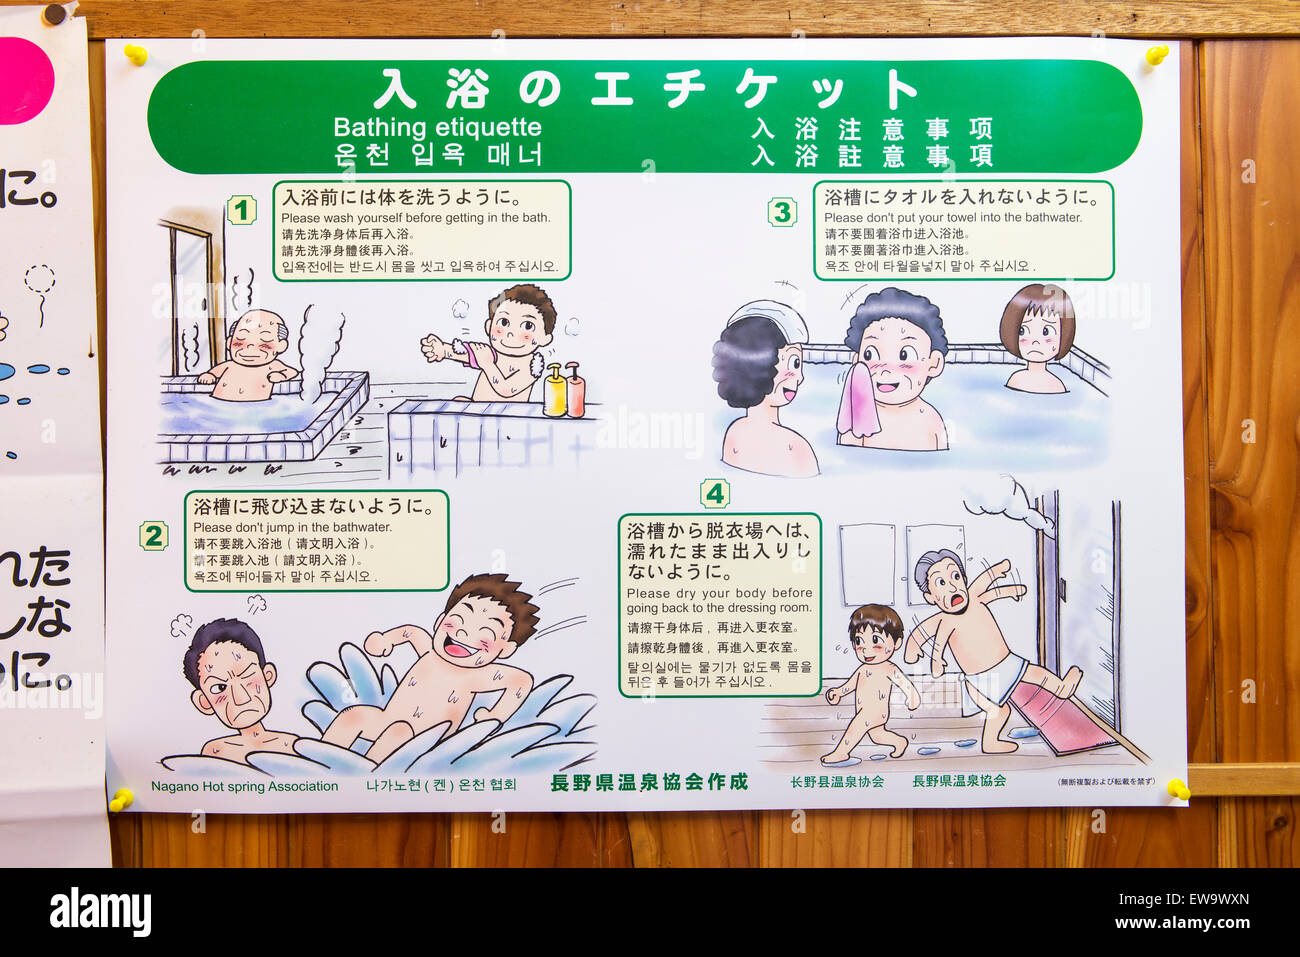 Bathing etiquette sign at an onsen hotspring in Japan Stock Photo